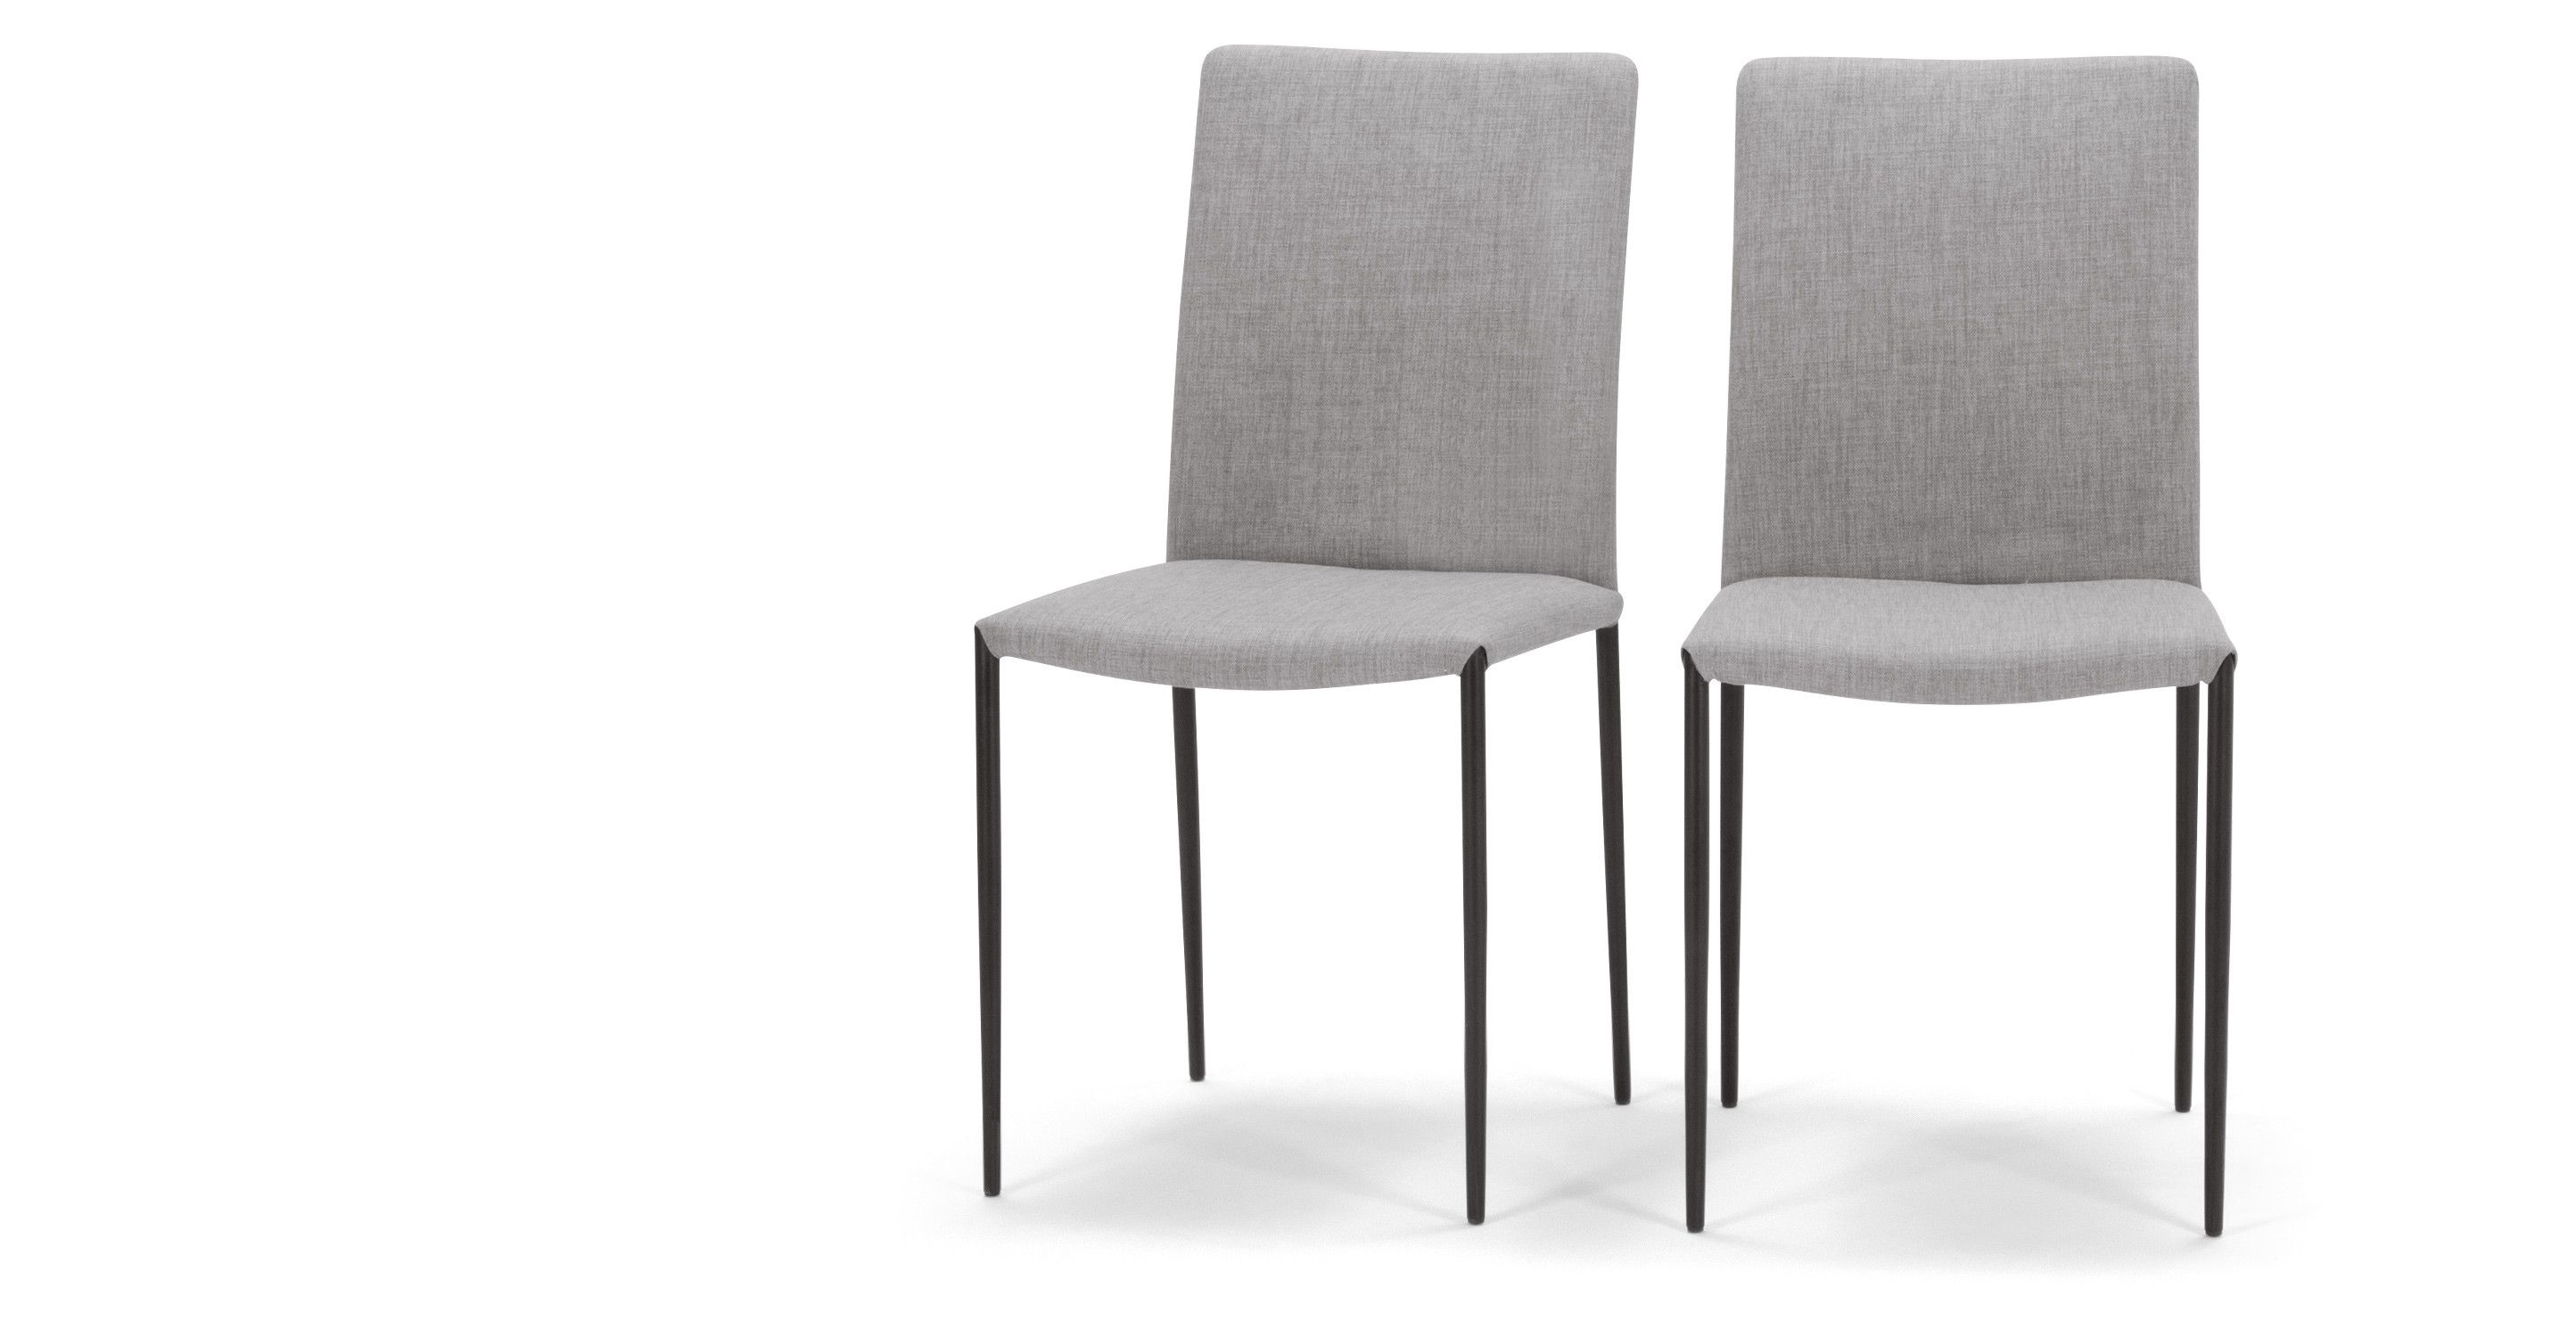 2 X Braga Dining Chairs Cathedral Grey With Black Powder Coated